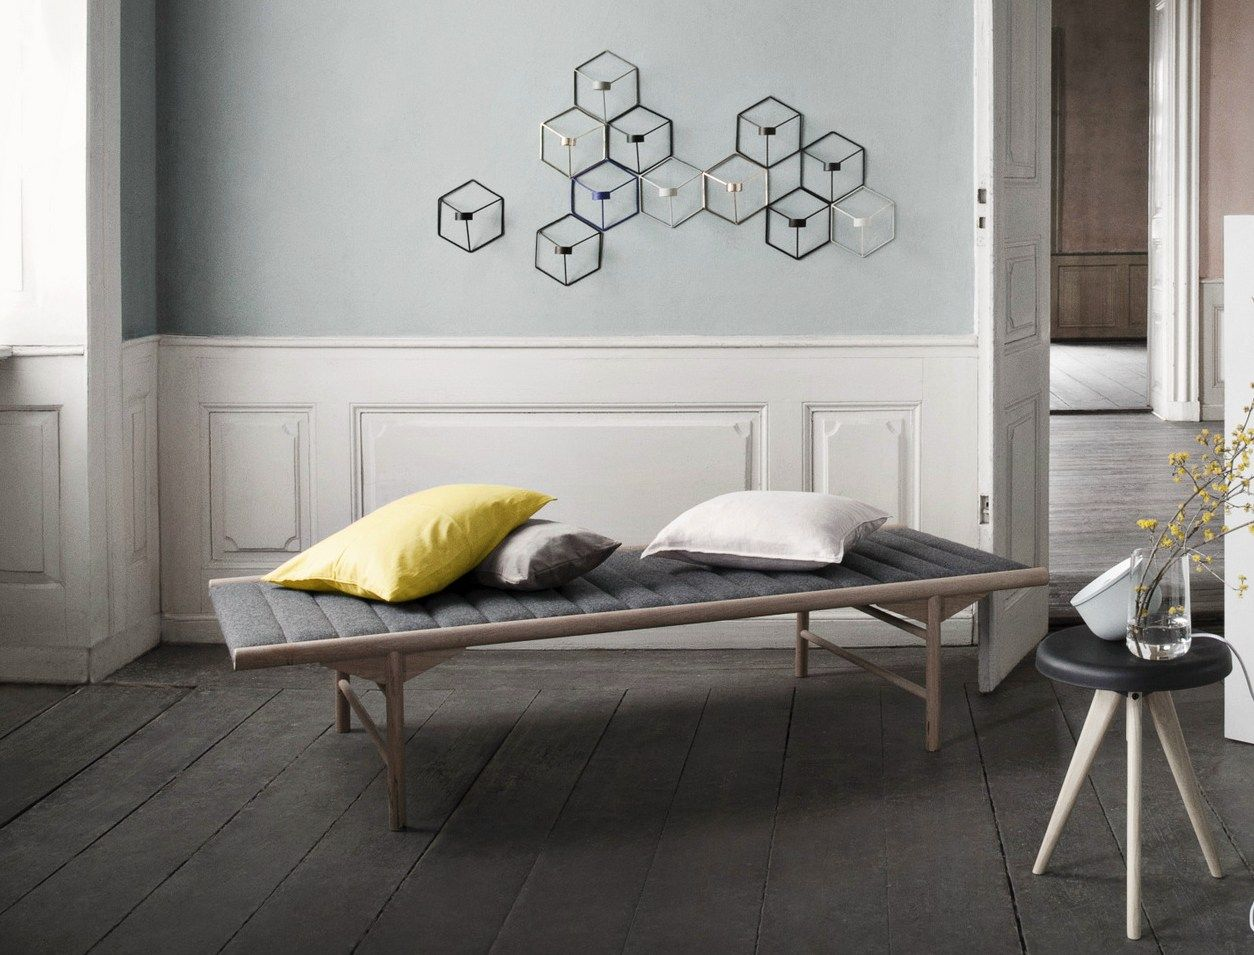 Day bed from Menu